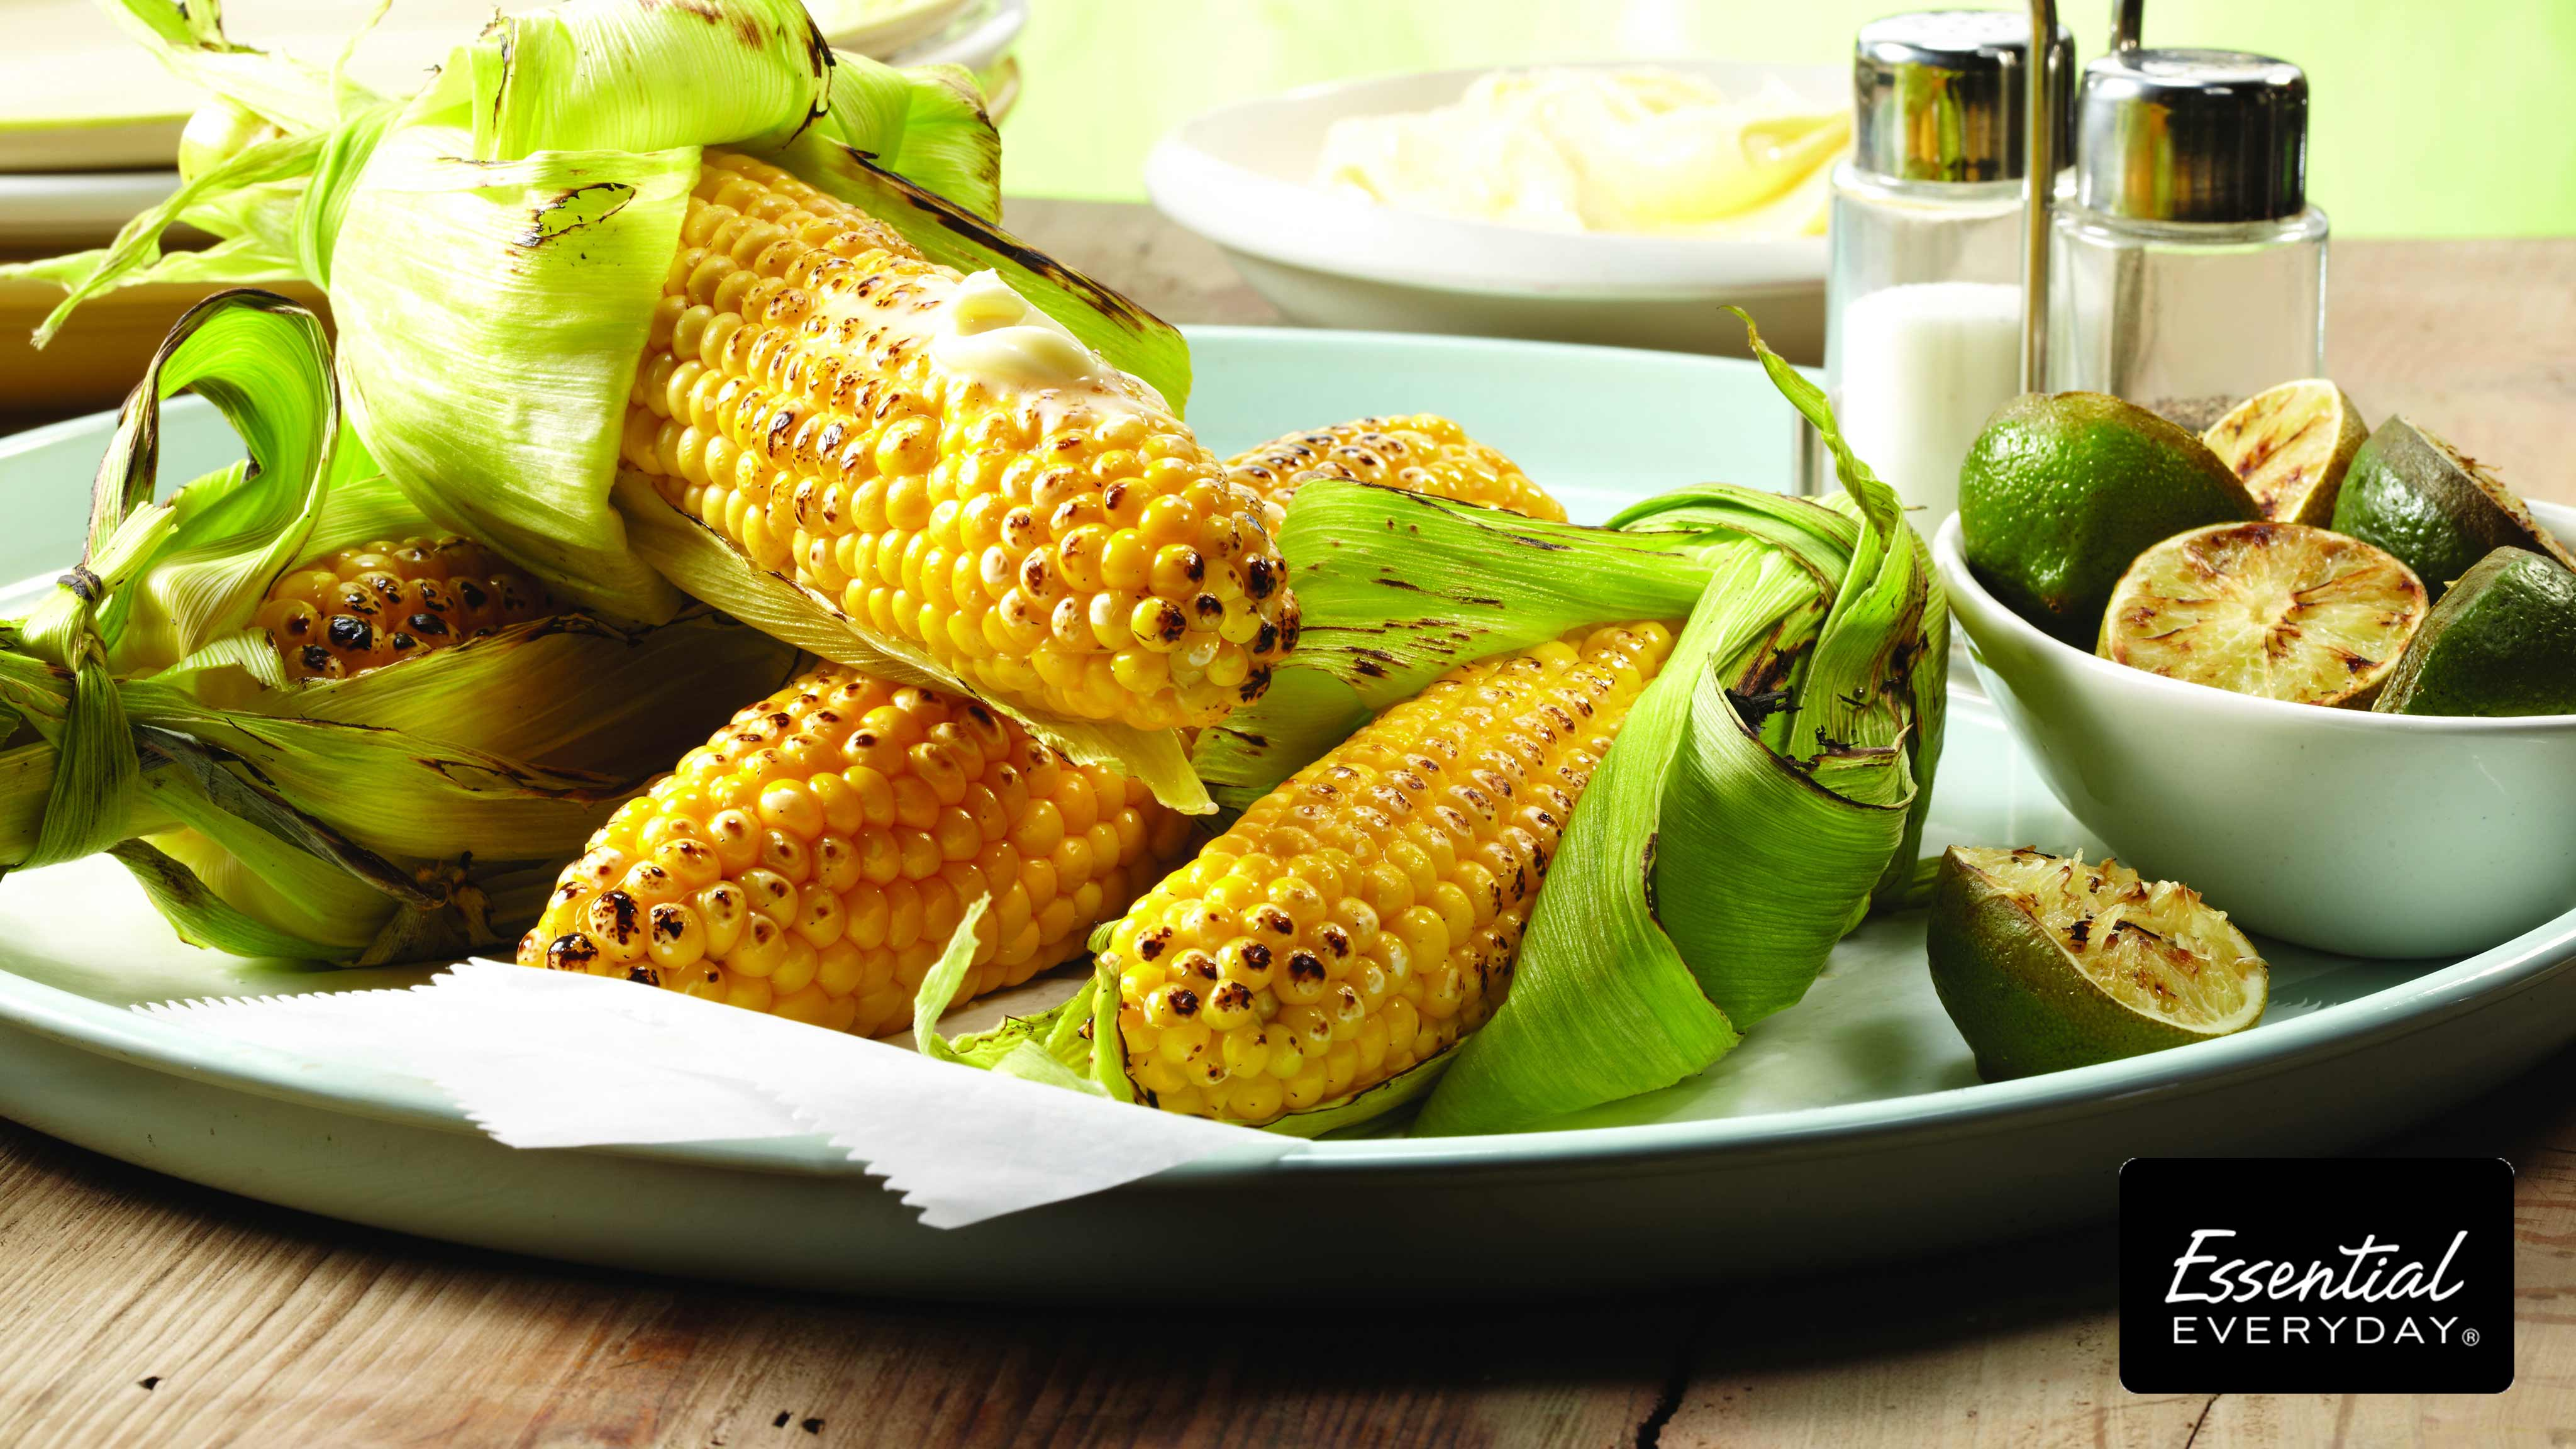 Image for Recipe Grilled Corn on the Cob